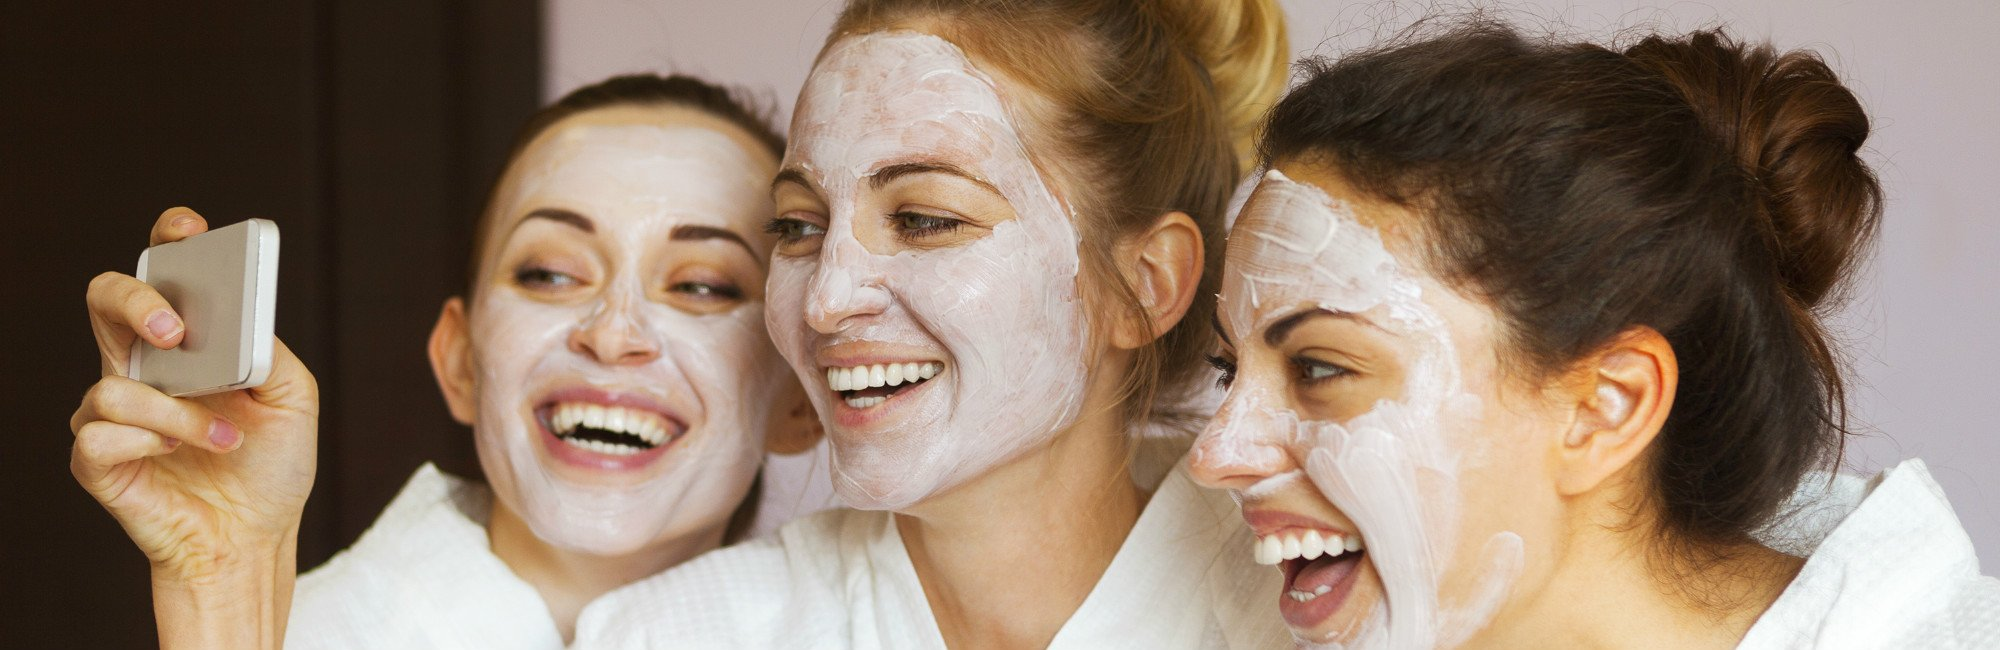 Crantock Bay Spa Day Girls - Spa Days